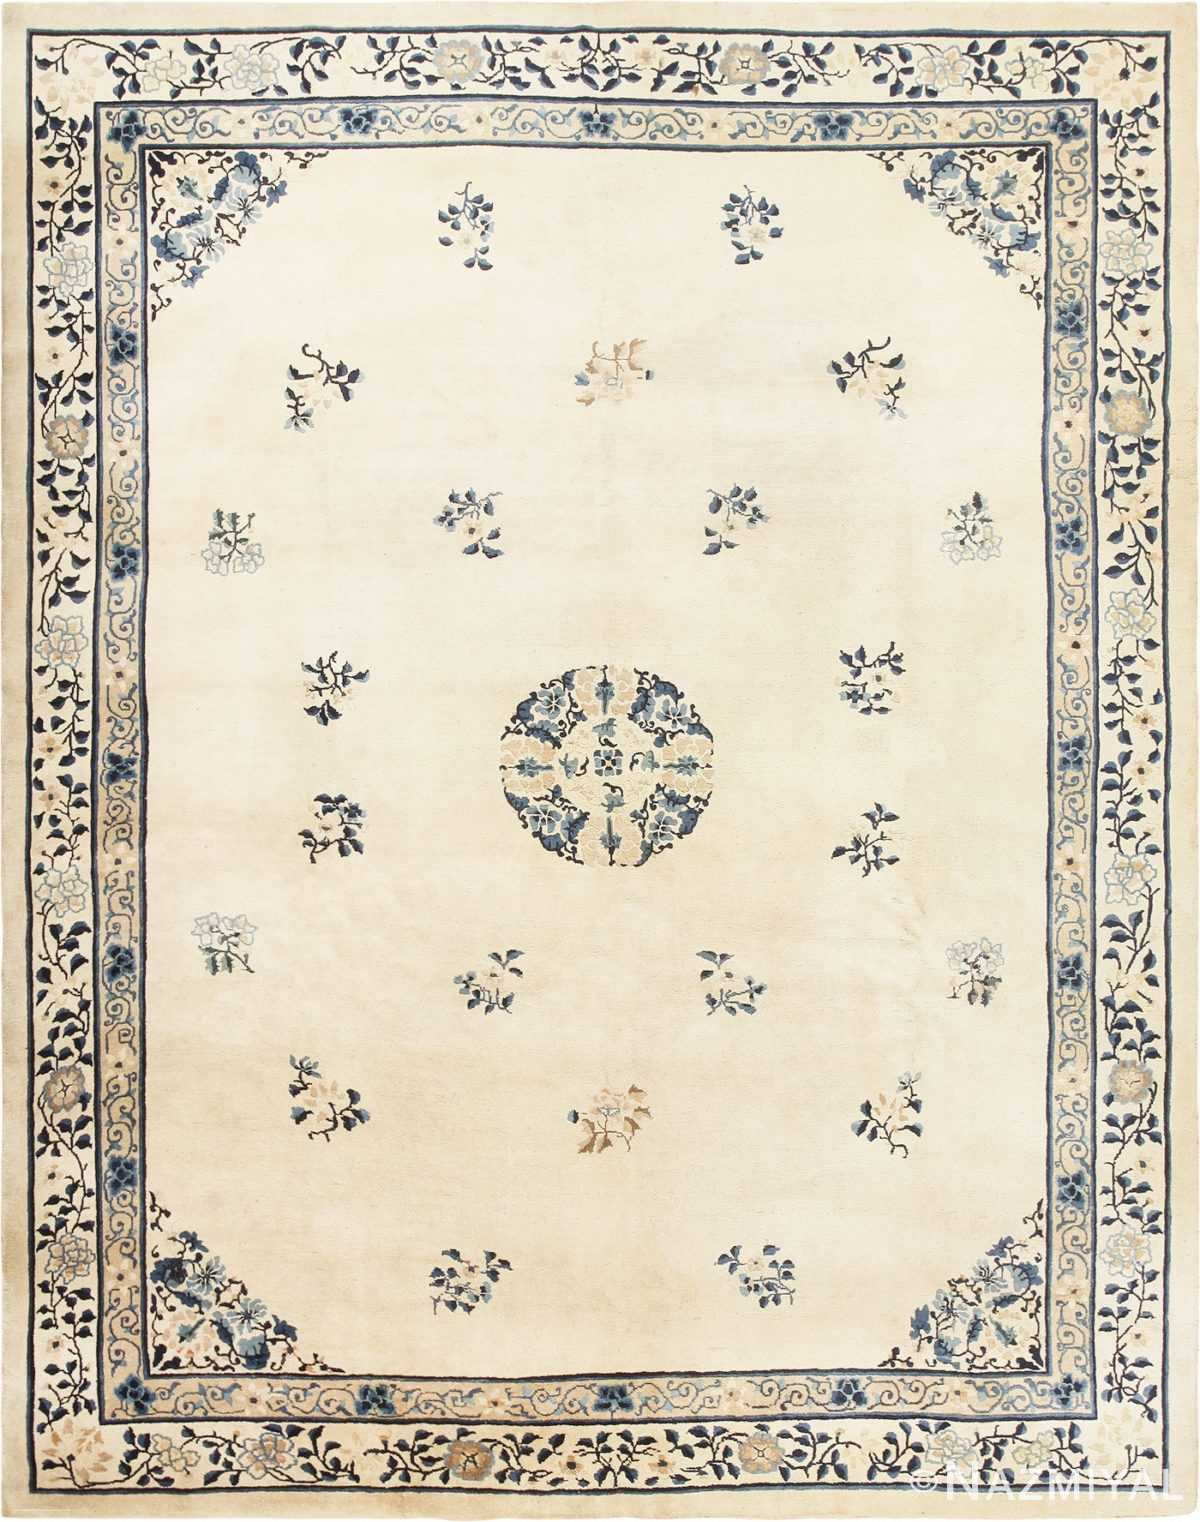 Antique Room Size Ivory and Blue Chinese Rug 49077 From Nazmiyal Antique Rugs in NYC